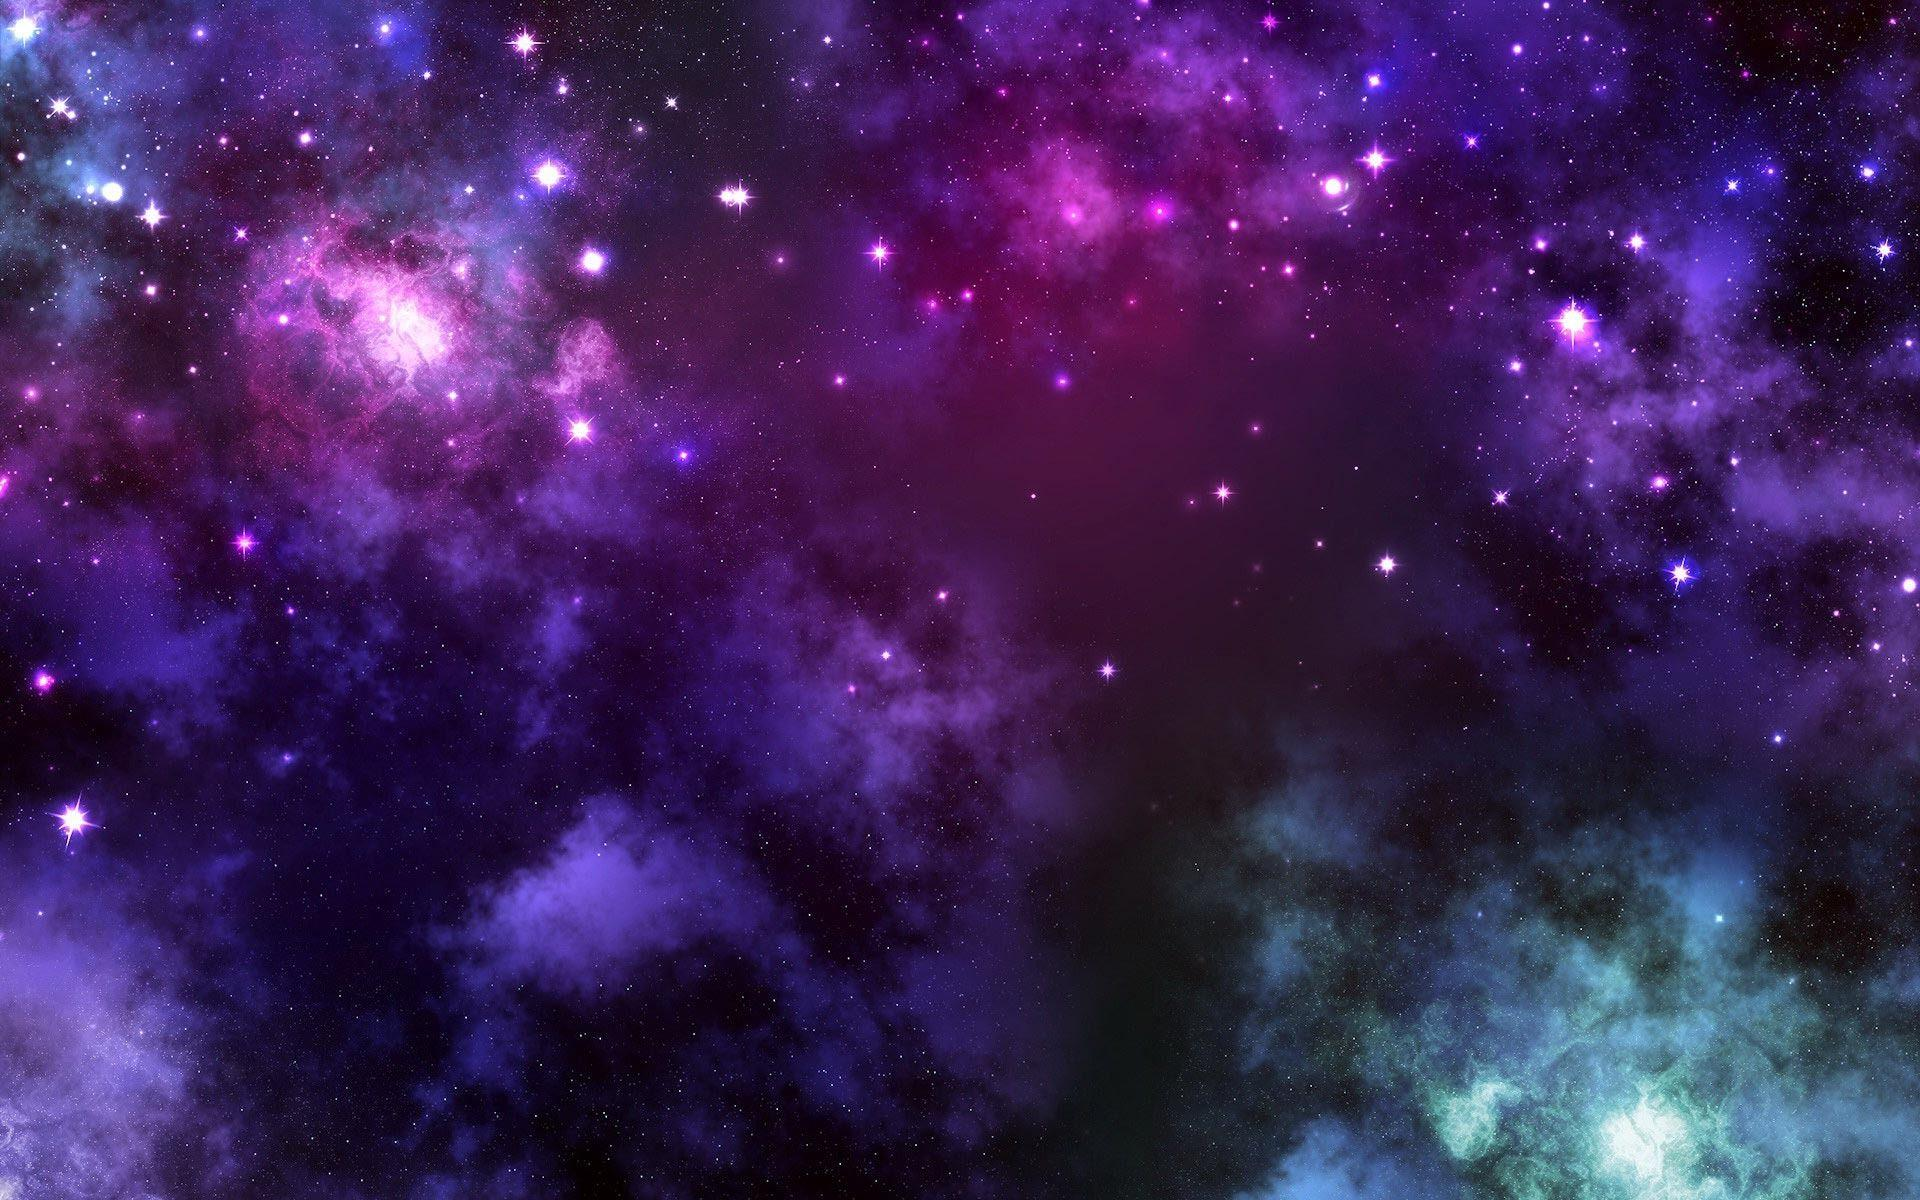 amazing solar system backgrounds in purple - photo #24